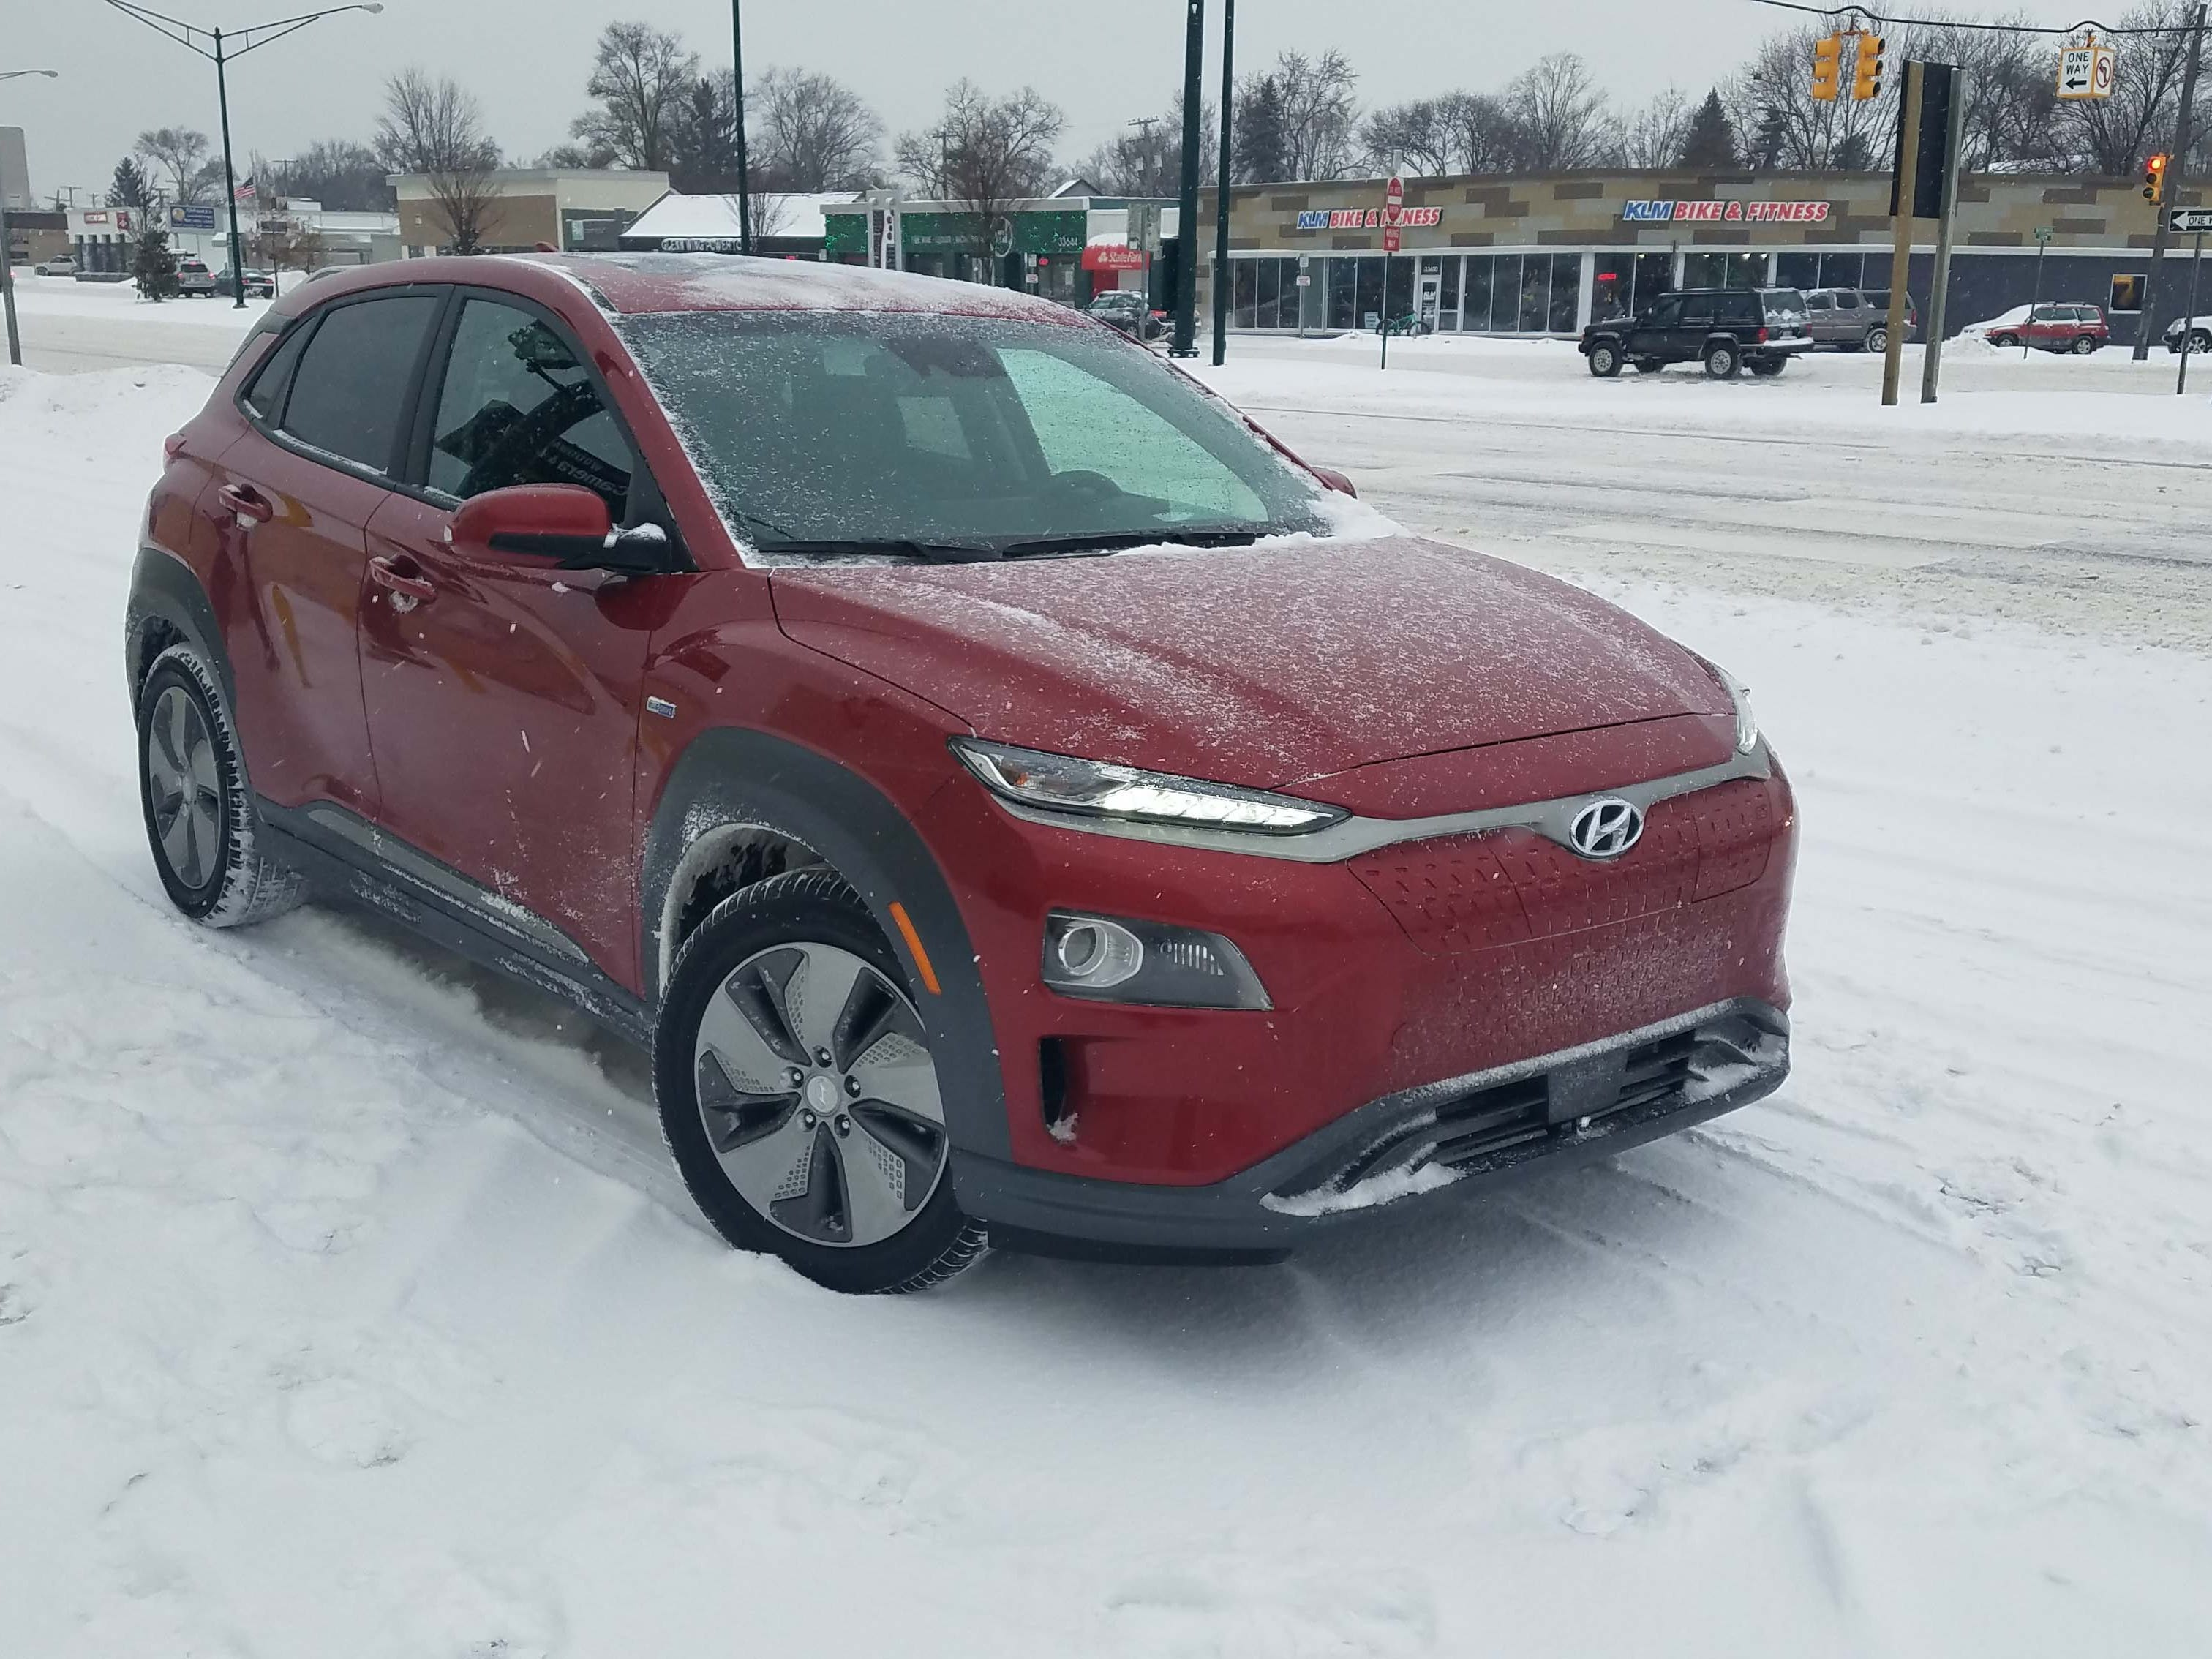 The $37K 2019 Hyundai Kona EV is expensive for a small ute, but is a good Metro Detroit commuter car for those who like EV torque, operation and have a 240-volt charger in their garage.